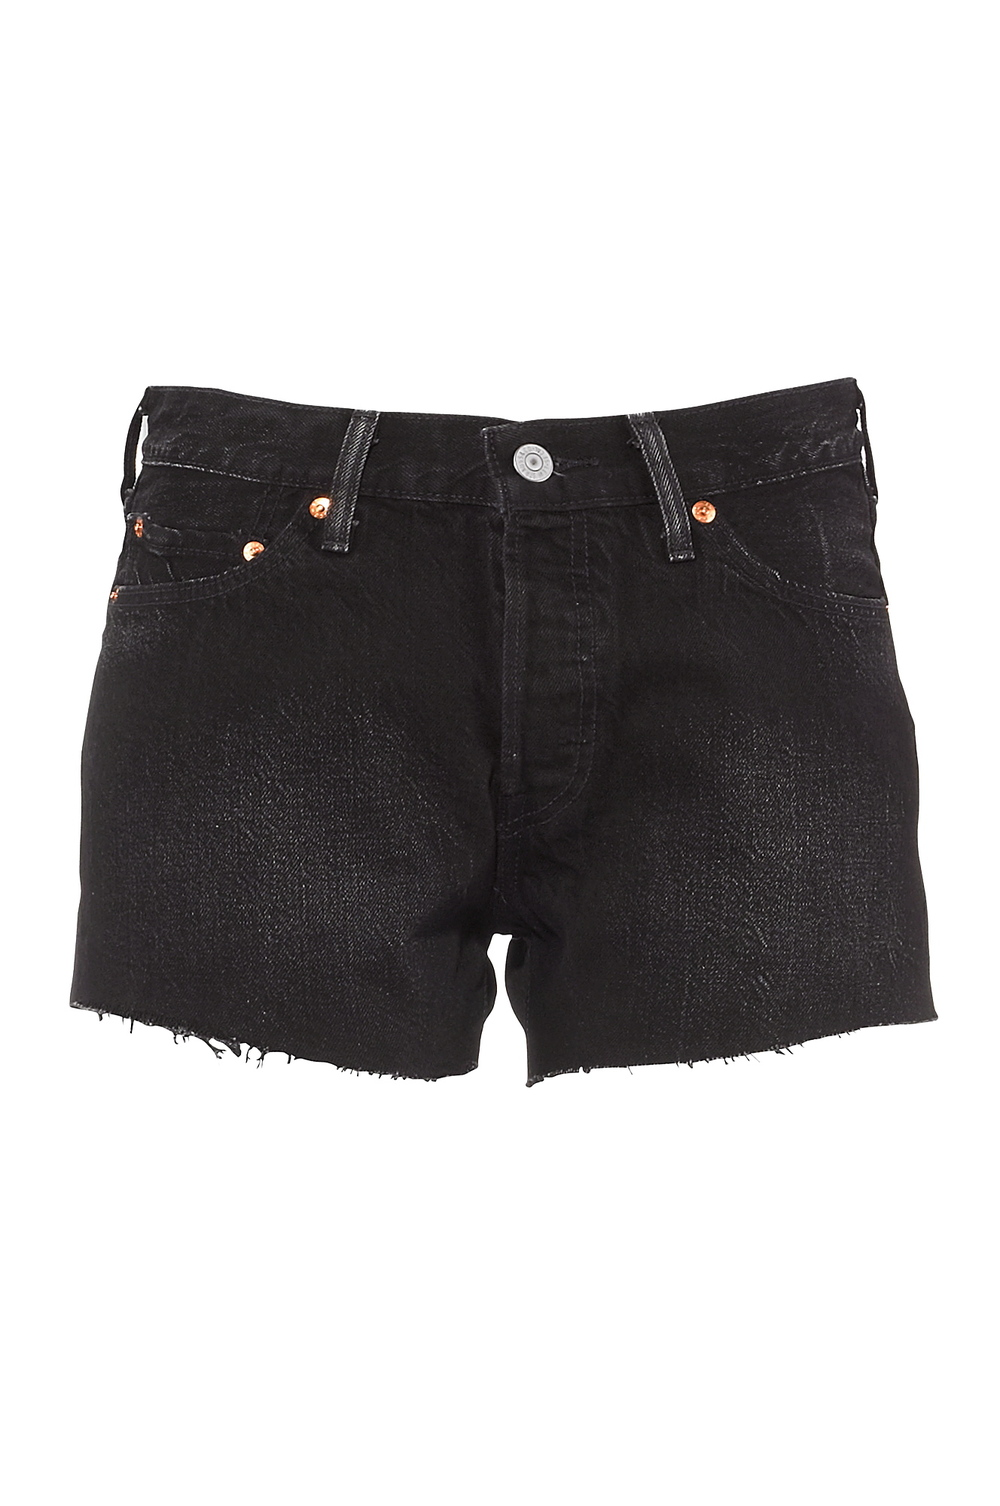 levi's denim cut offs